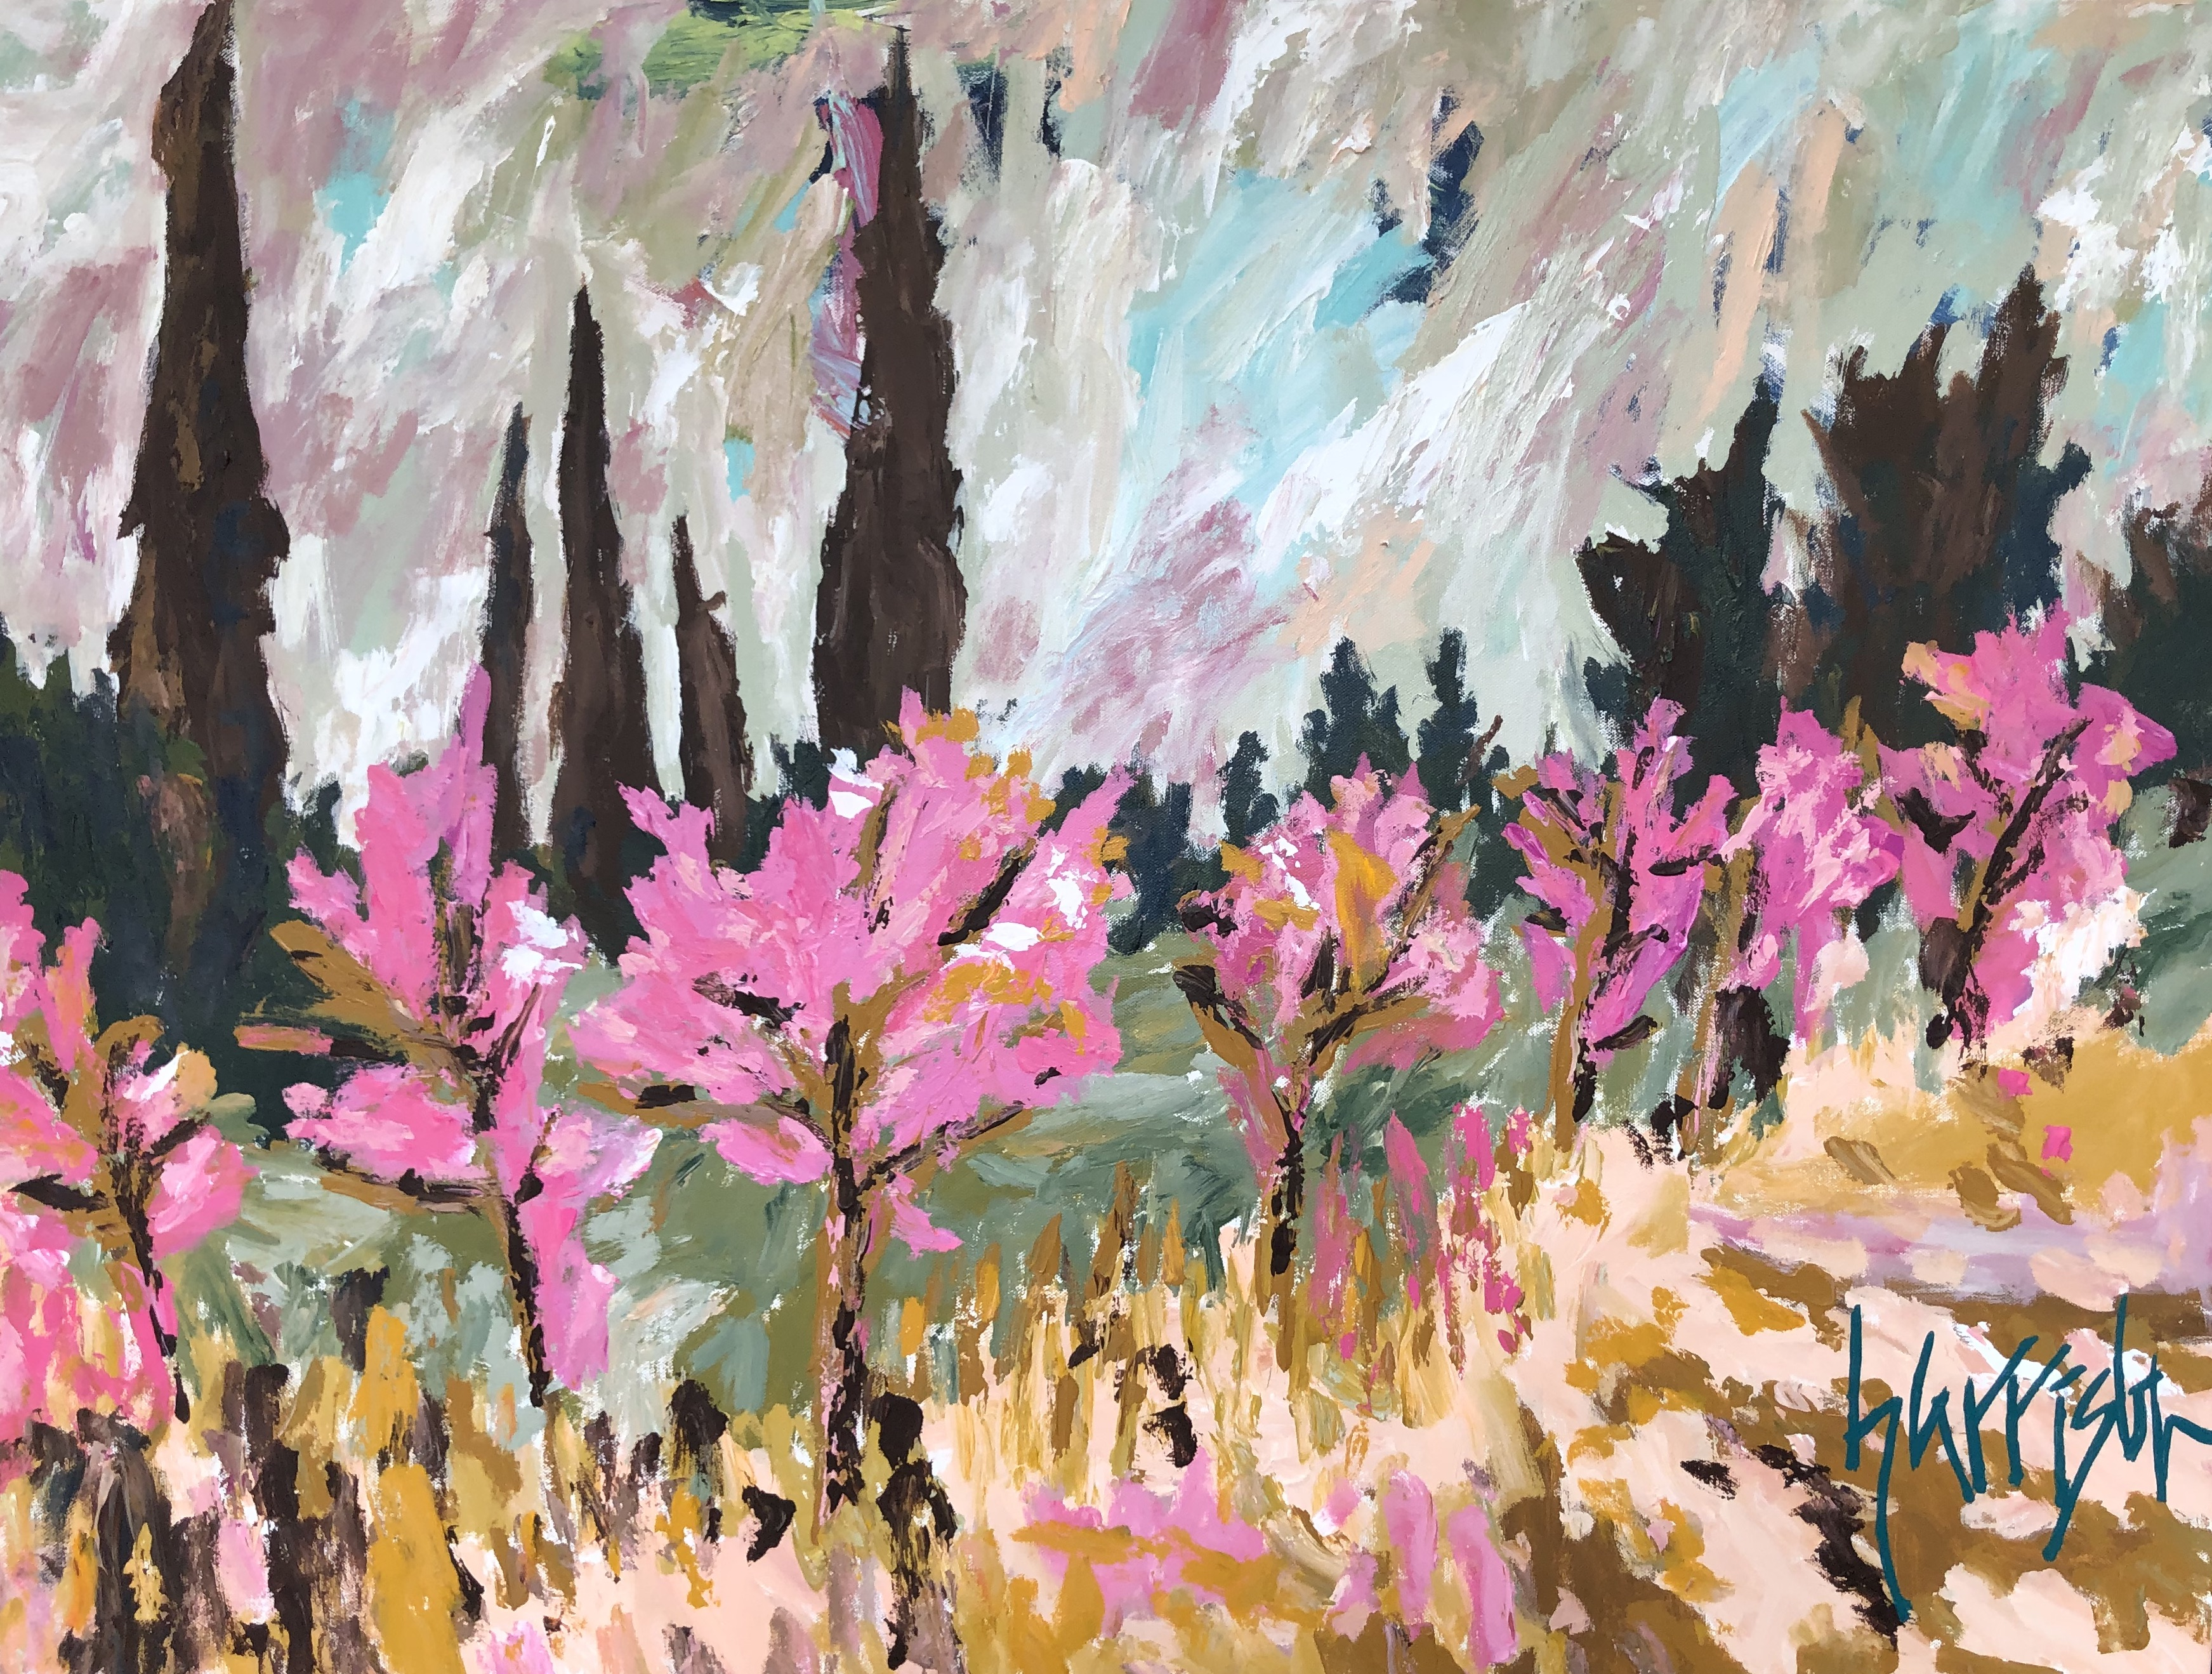 FIELDS OF PROVENCE 4 - 30x40